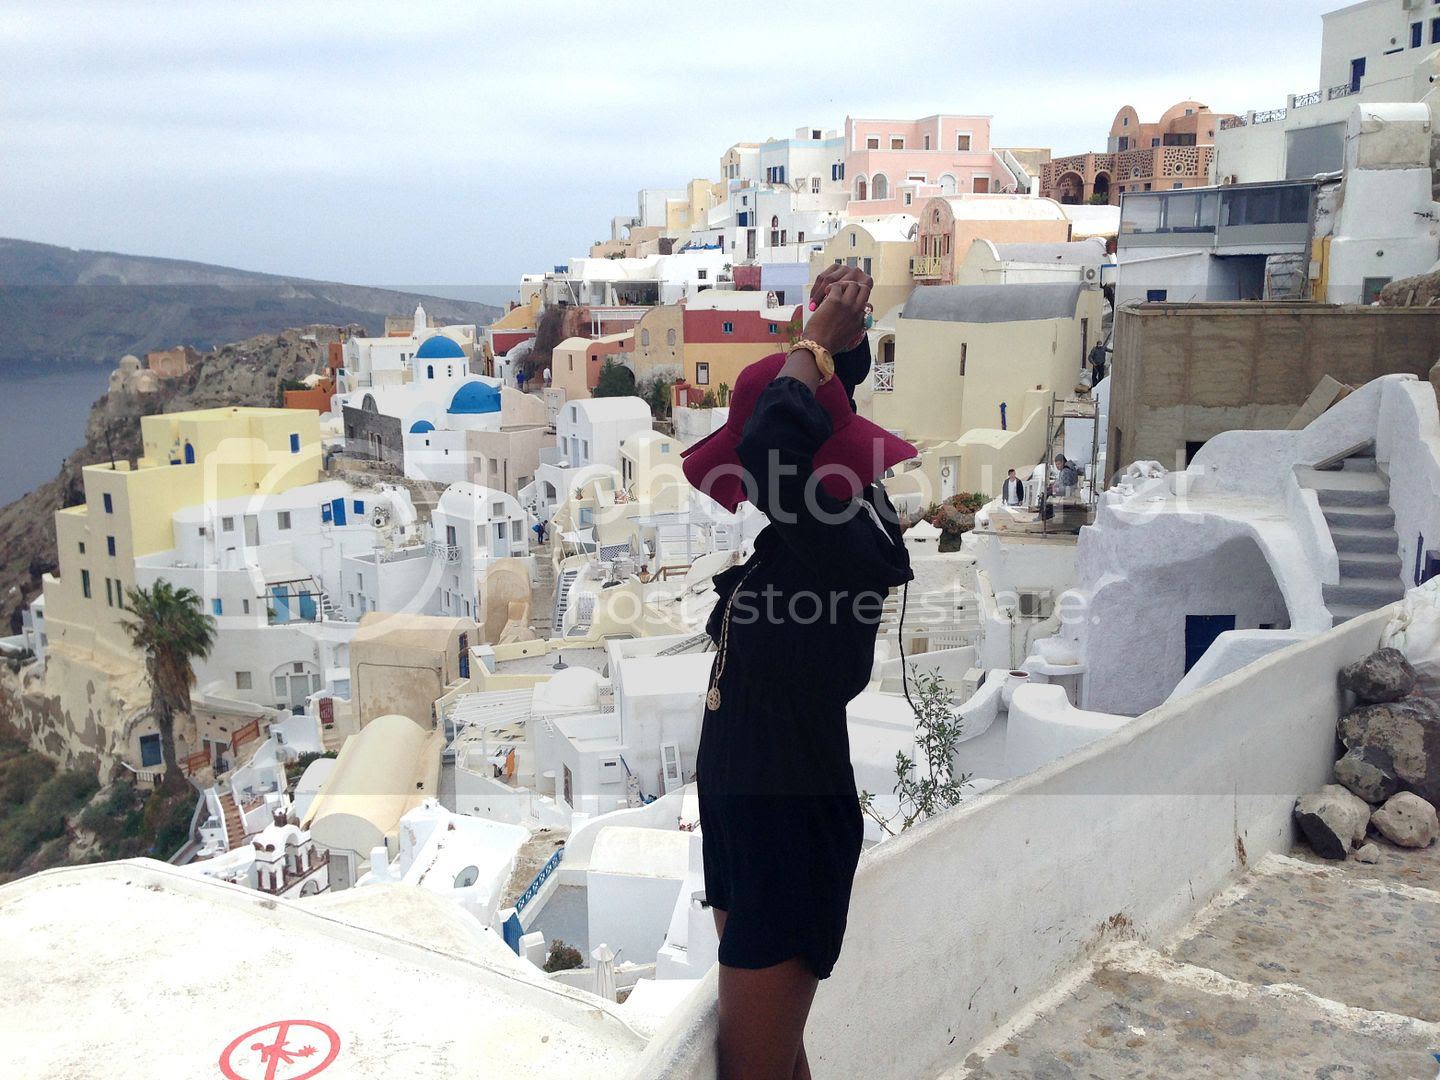 photo get away in Santorini_zps31cnartv.jpg